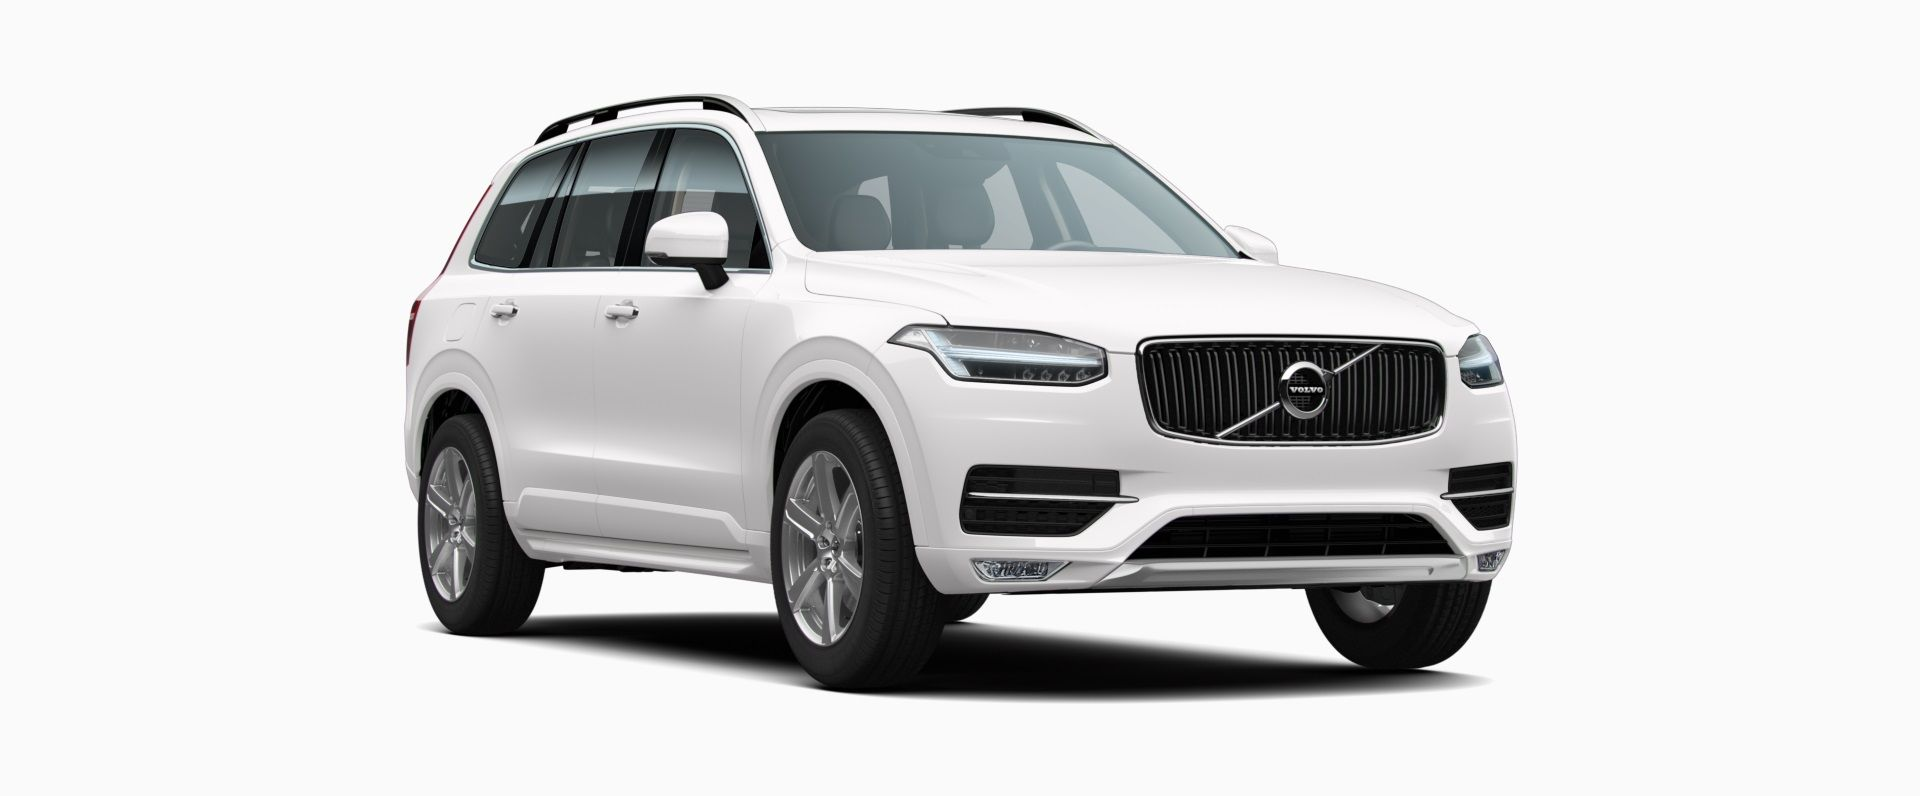 Volvo Xc90 T8 Twin Engine Plug In Hybrid 7 Passenger Inscription Volvo Cars Car Volvo